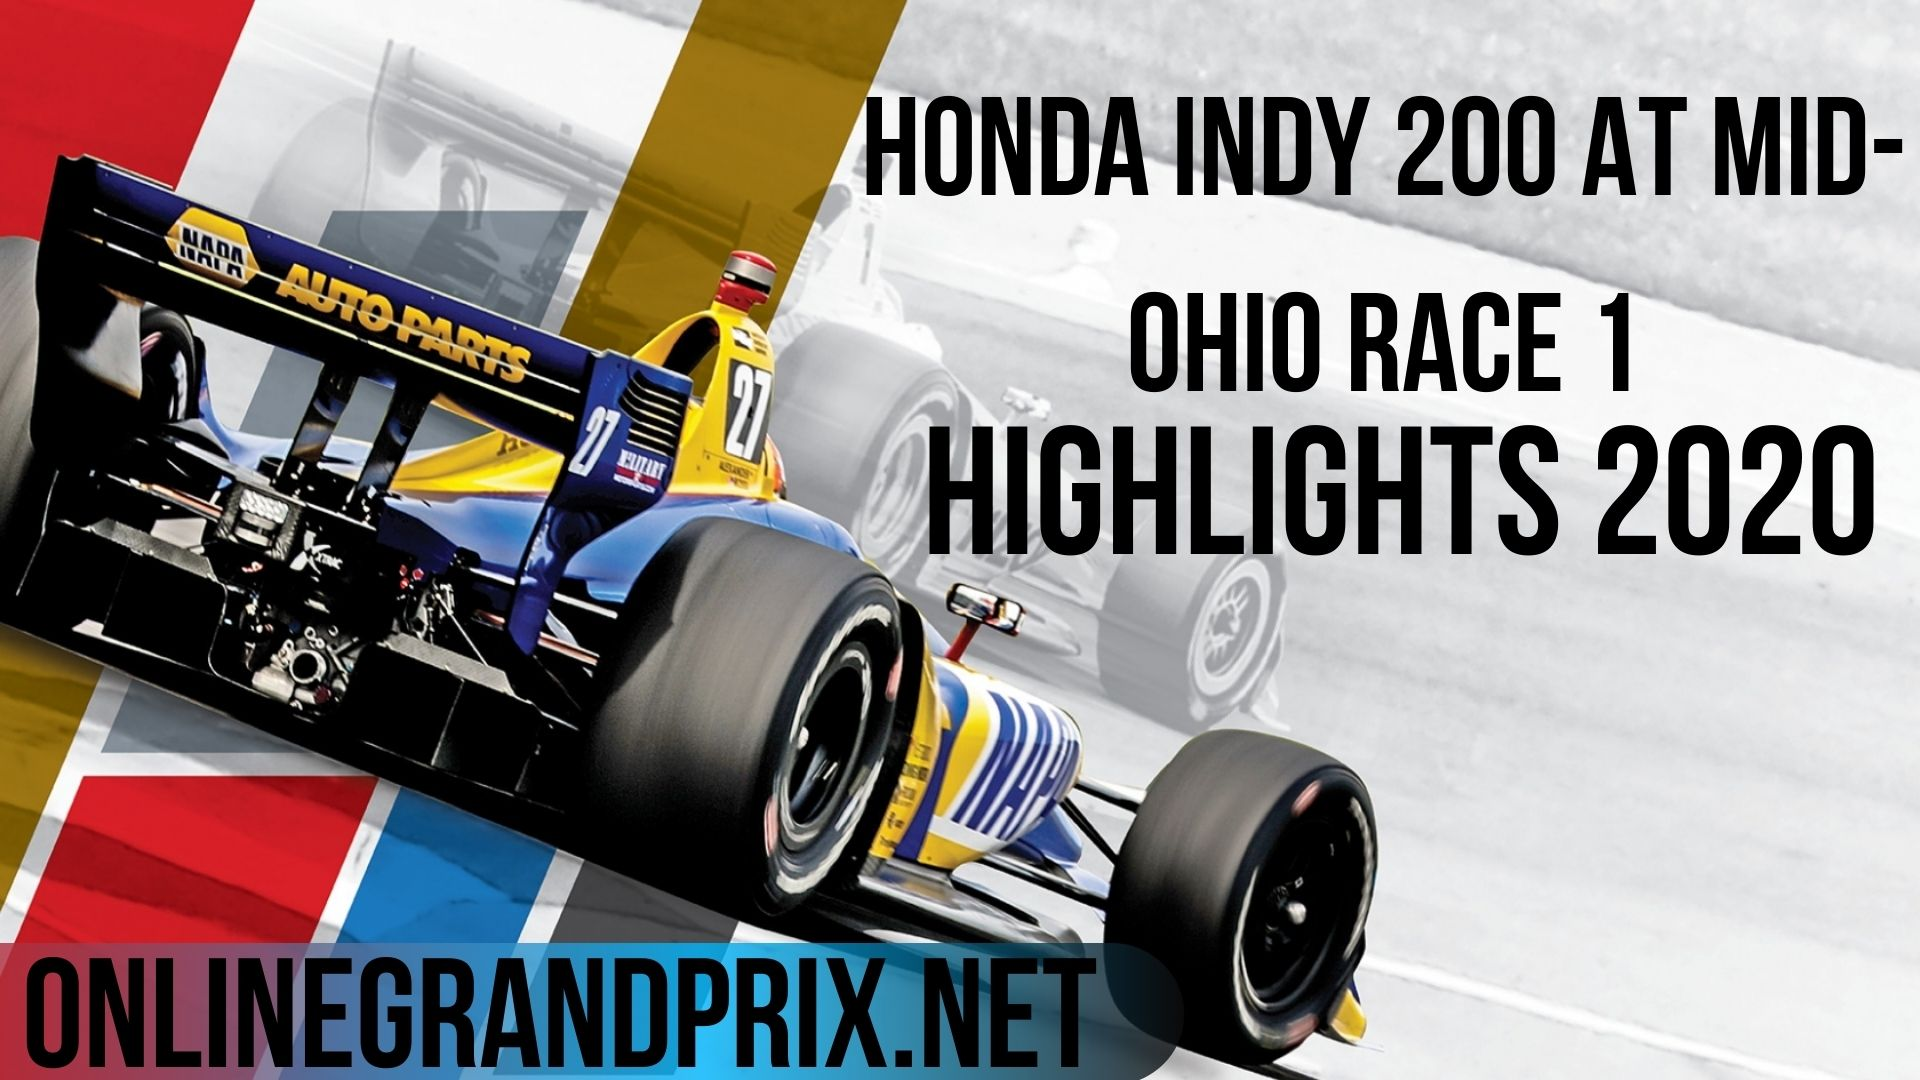 Honda INDY 200 At Mid-Ohio Race 1 Highlights INDYCAR 2020